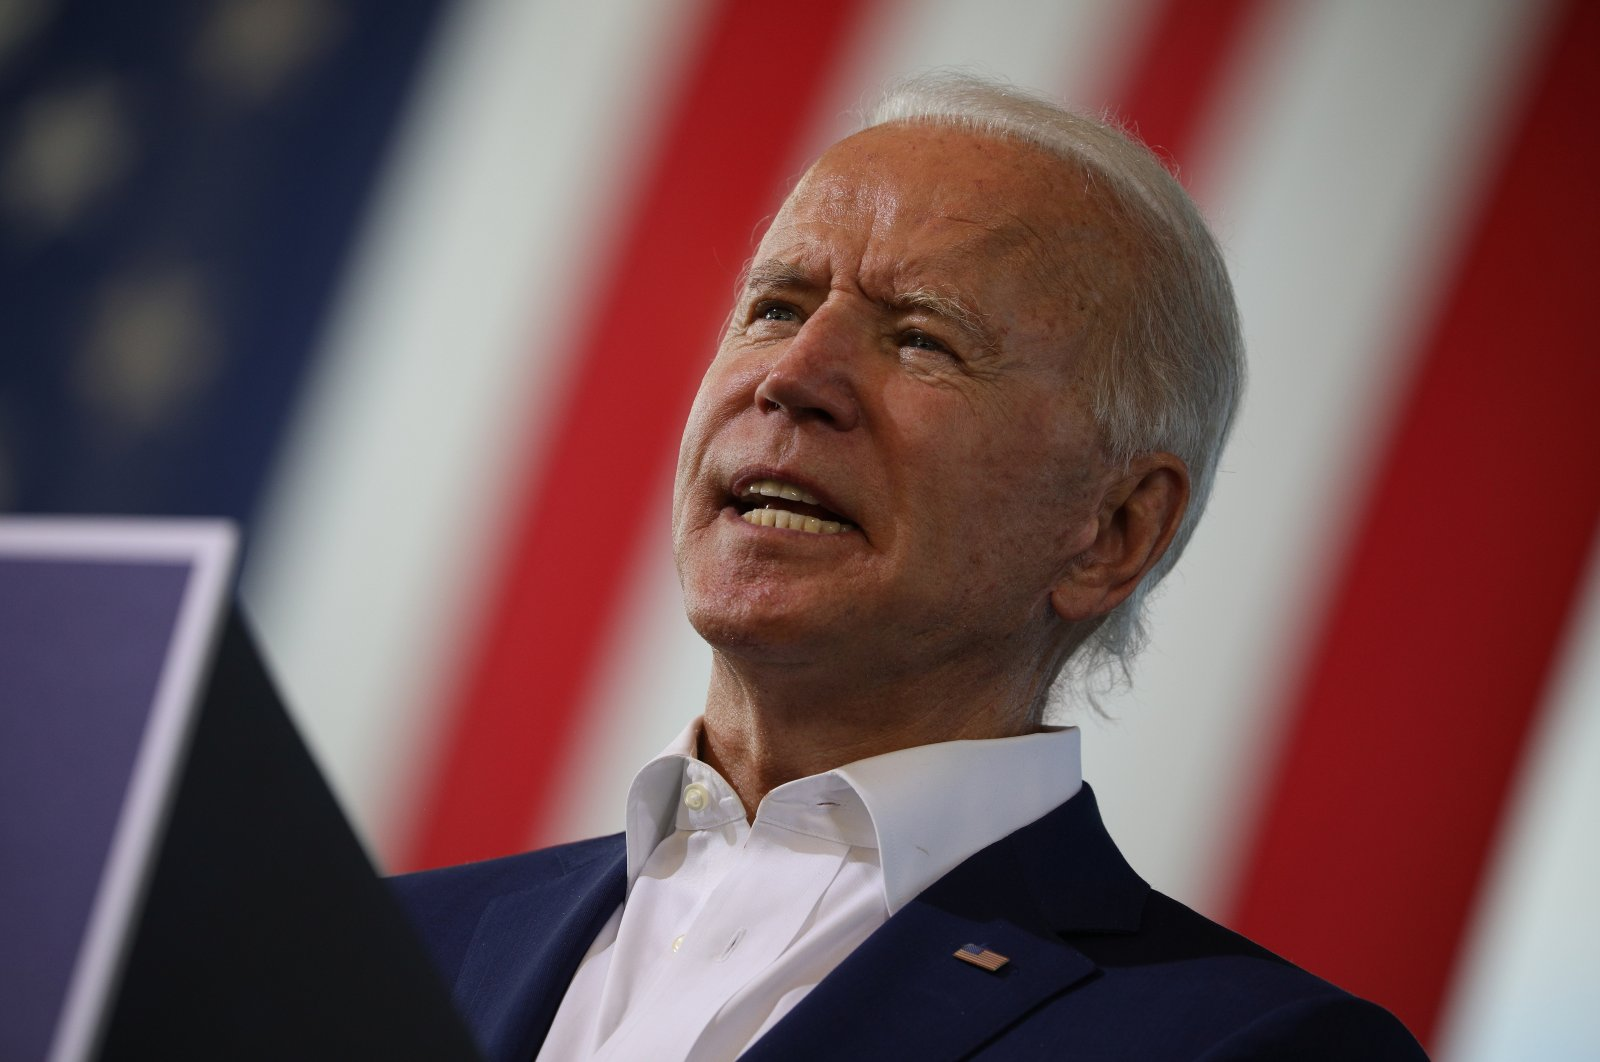 U.S. Democratic presidential candidate Joe Biden delivers remarks during a voter mobilization event, at Miramar Regional Park in Miramar, Florida, U.S., Oct. 13, 2020. (Reuters Photo)